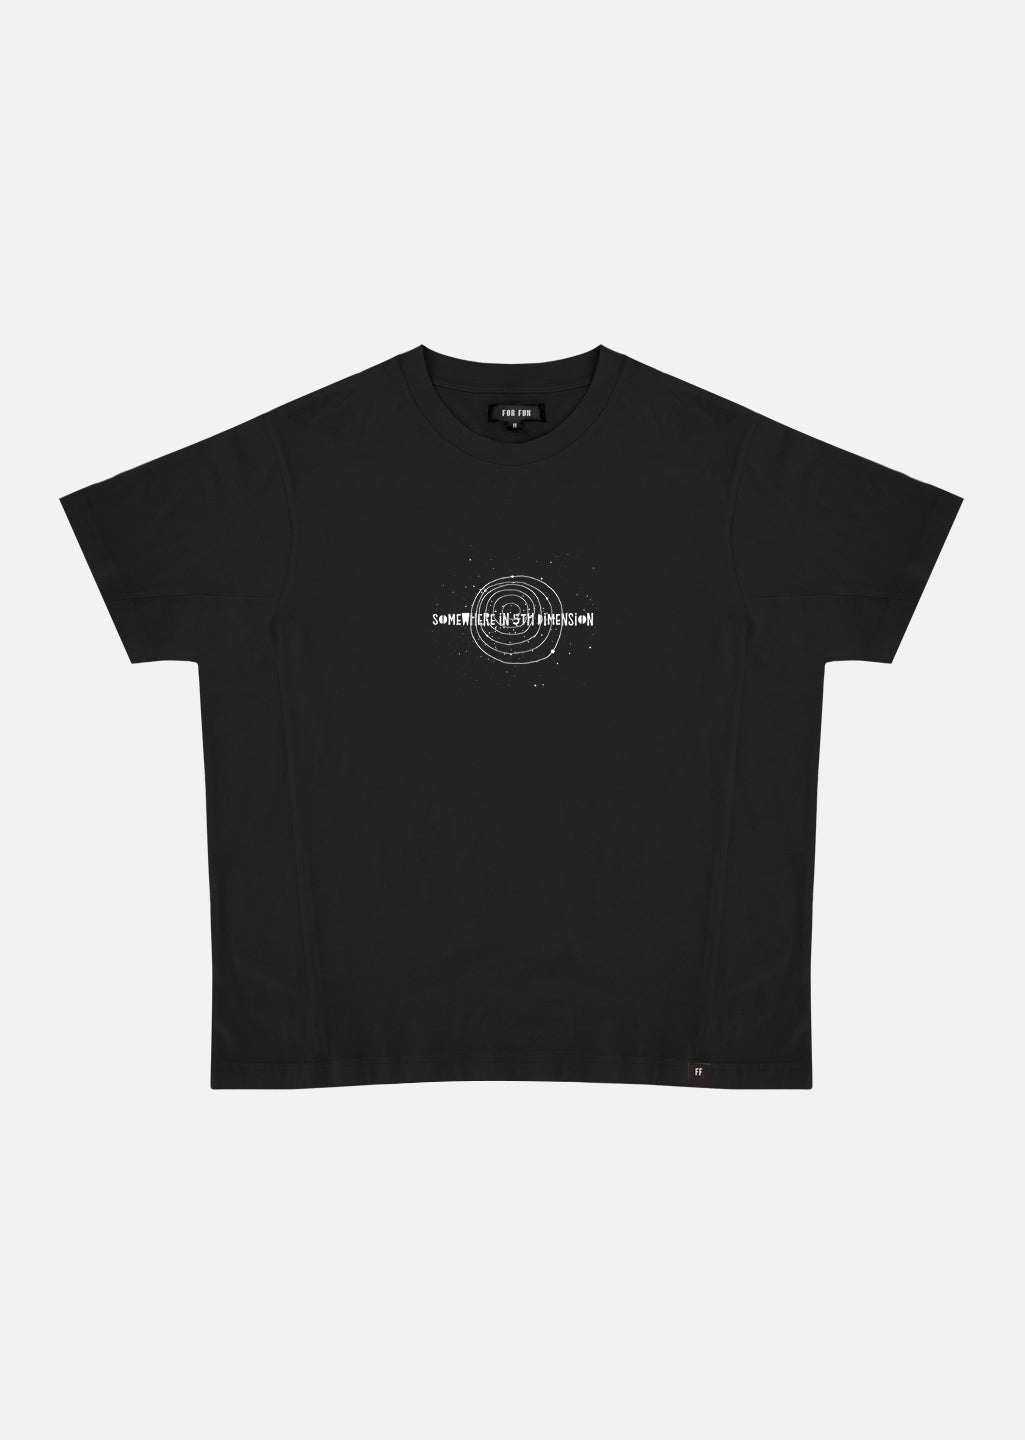 5th Dimension / Oversize T-shirt (Black)